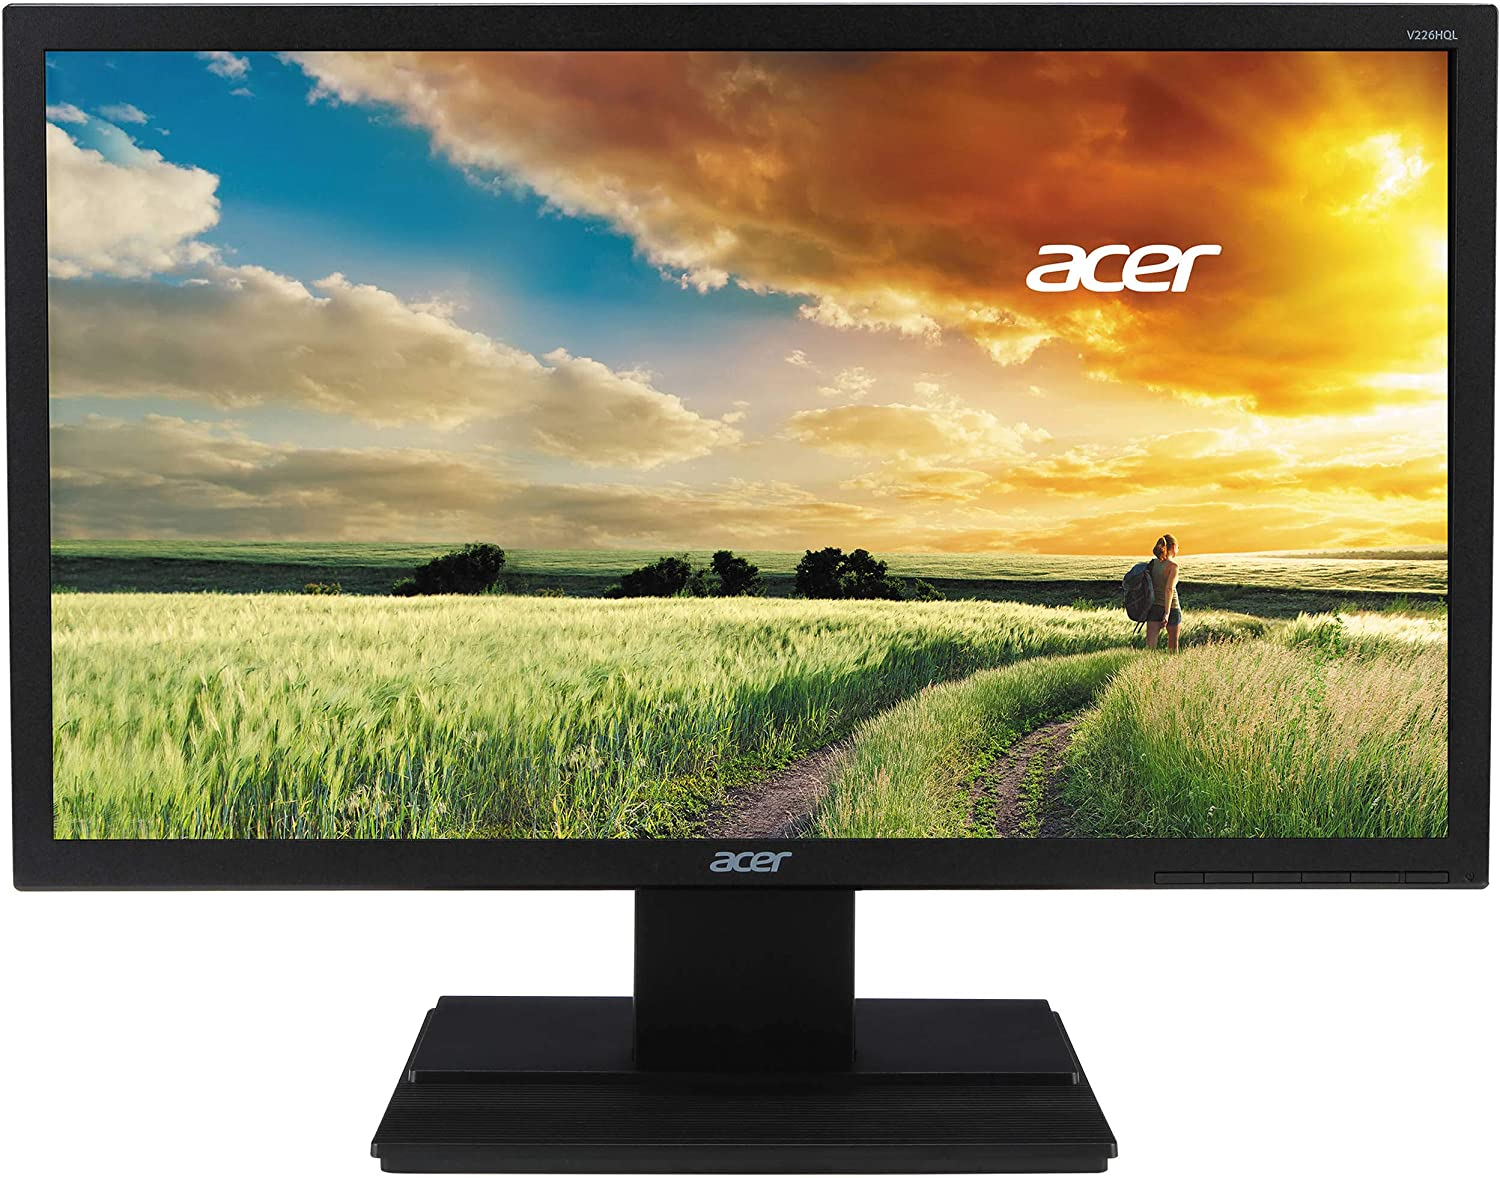 "Acer V6 21.5"" LED Widescreen LCD Monitor Full HD 1920x1080 5 ms 200 Nit TN (Renewed)"